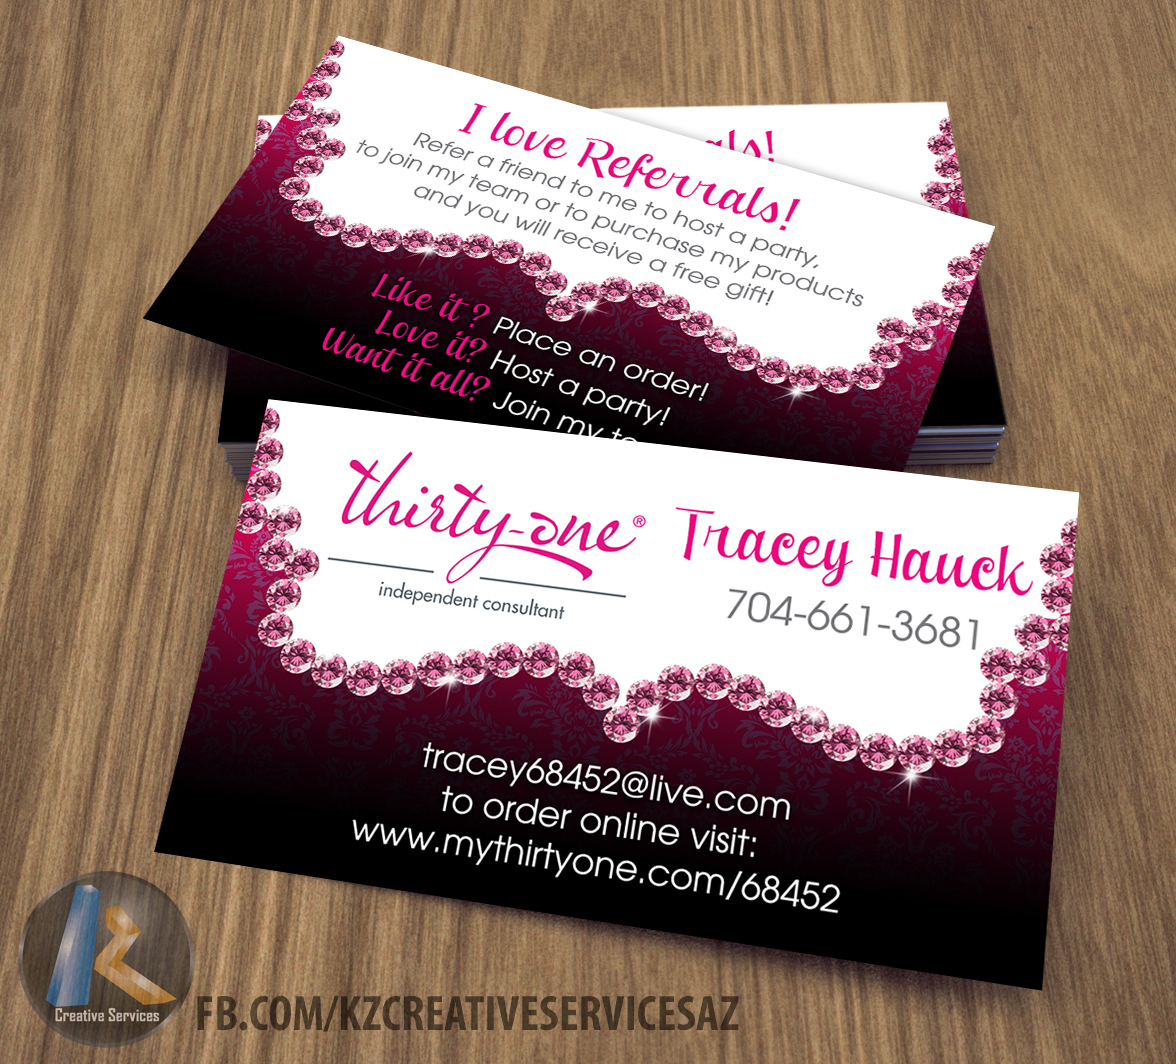 Thirty one Business Cards - 4 · KZ Creative Services · Online Store ...